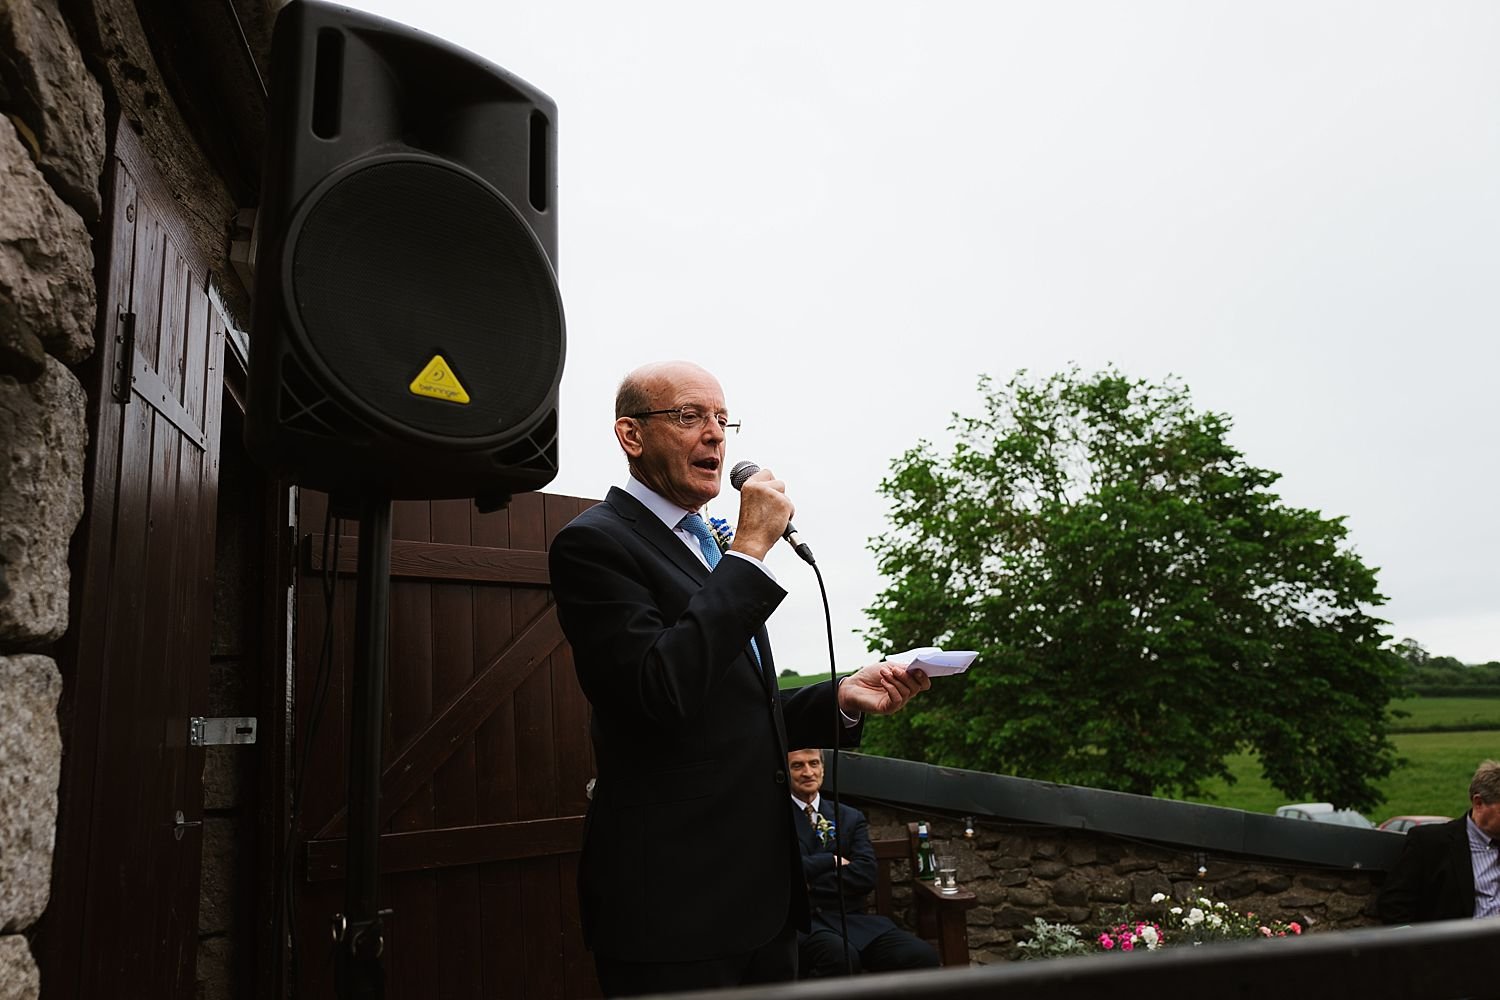 Outdoor speech at Park House Barn wedding reception